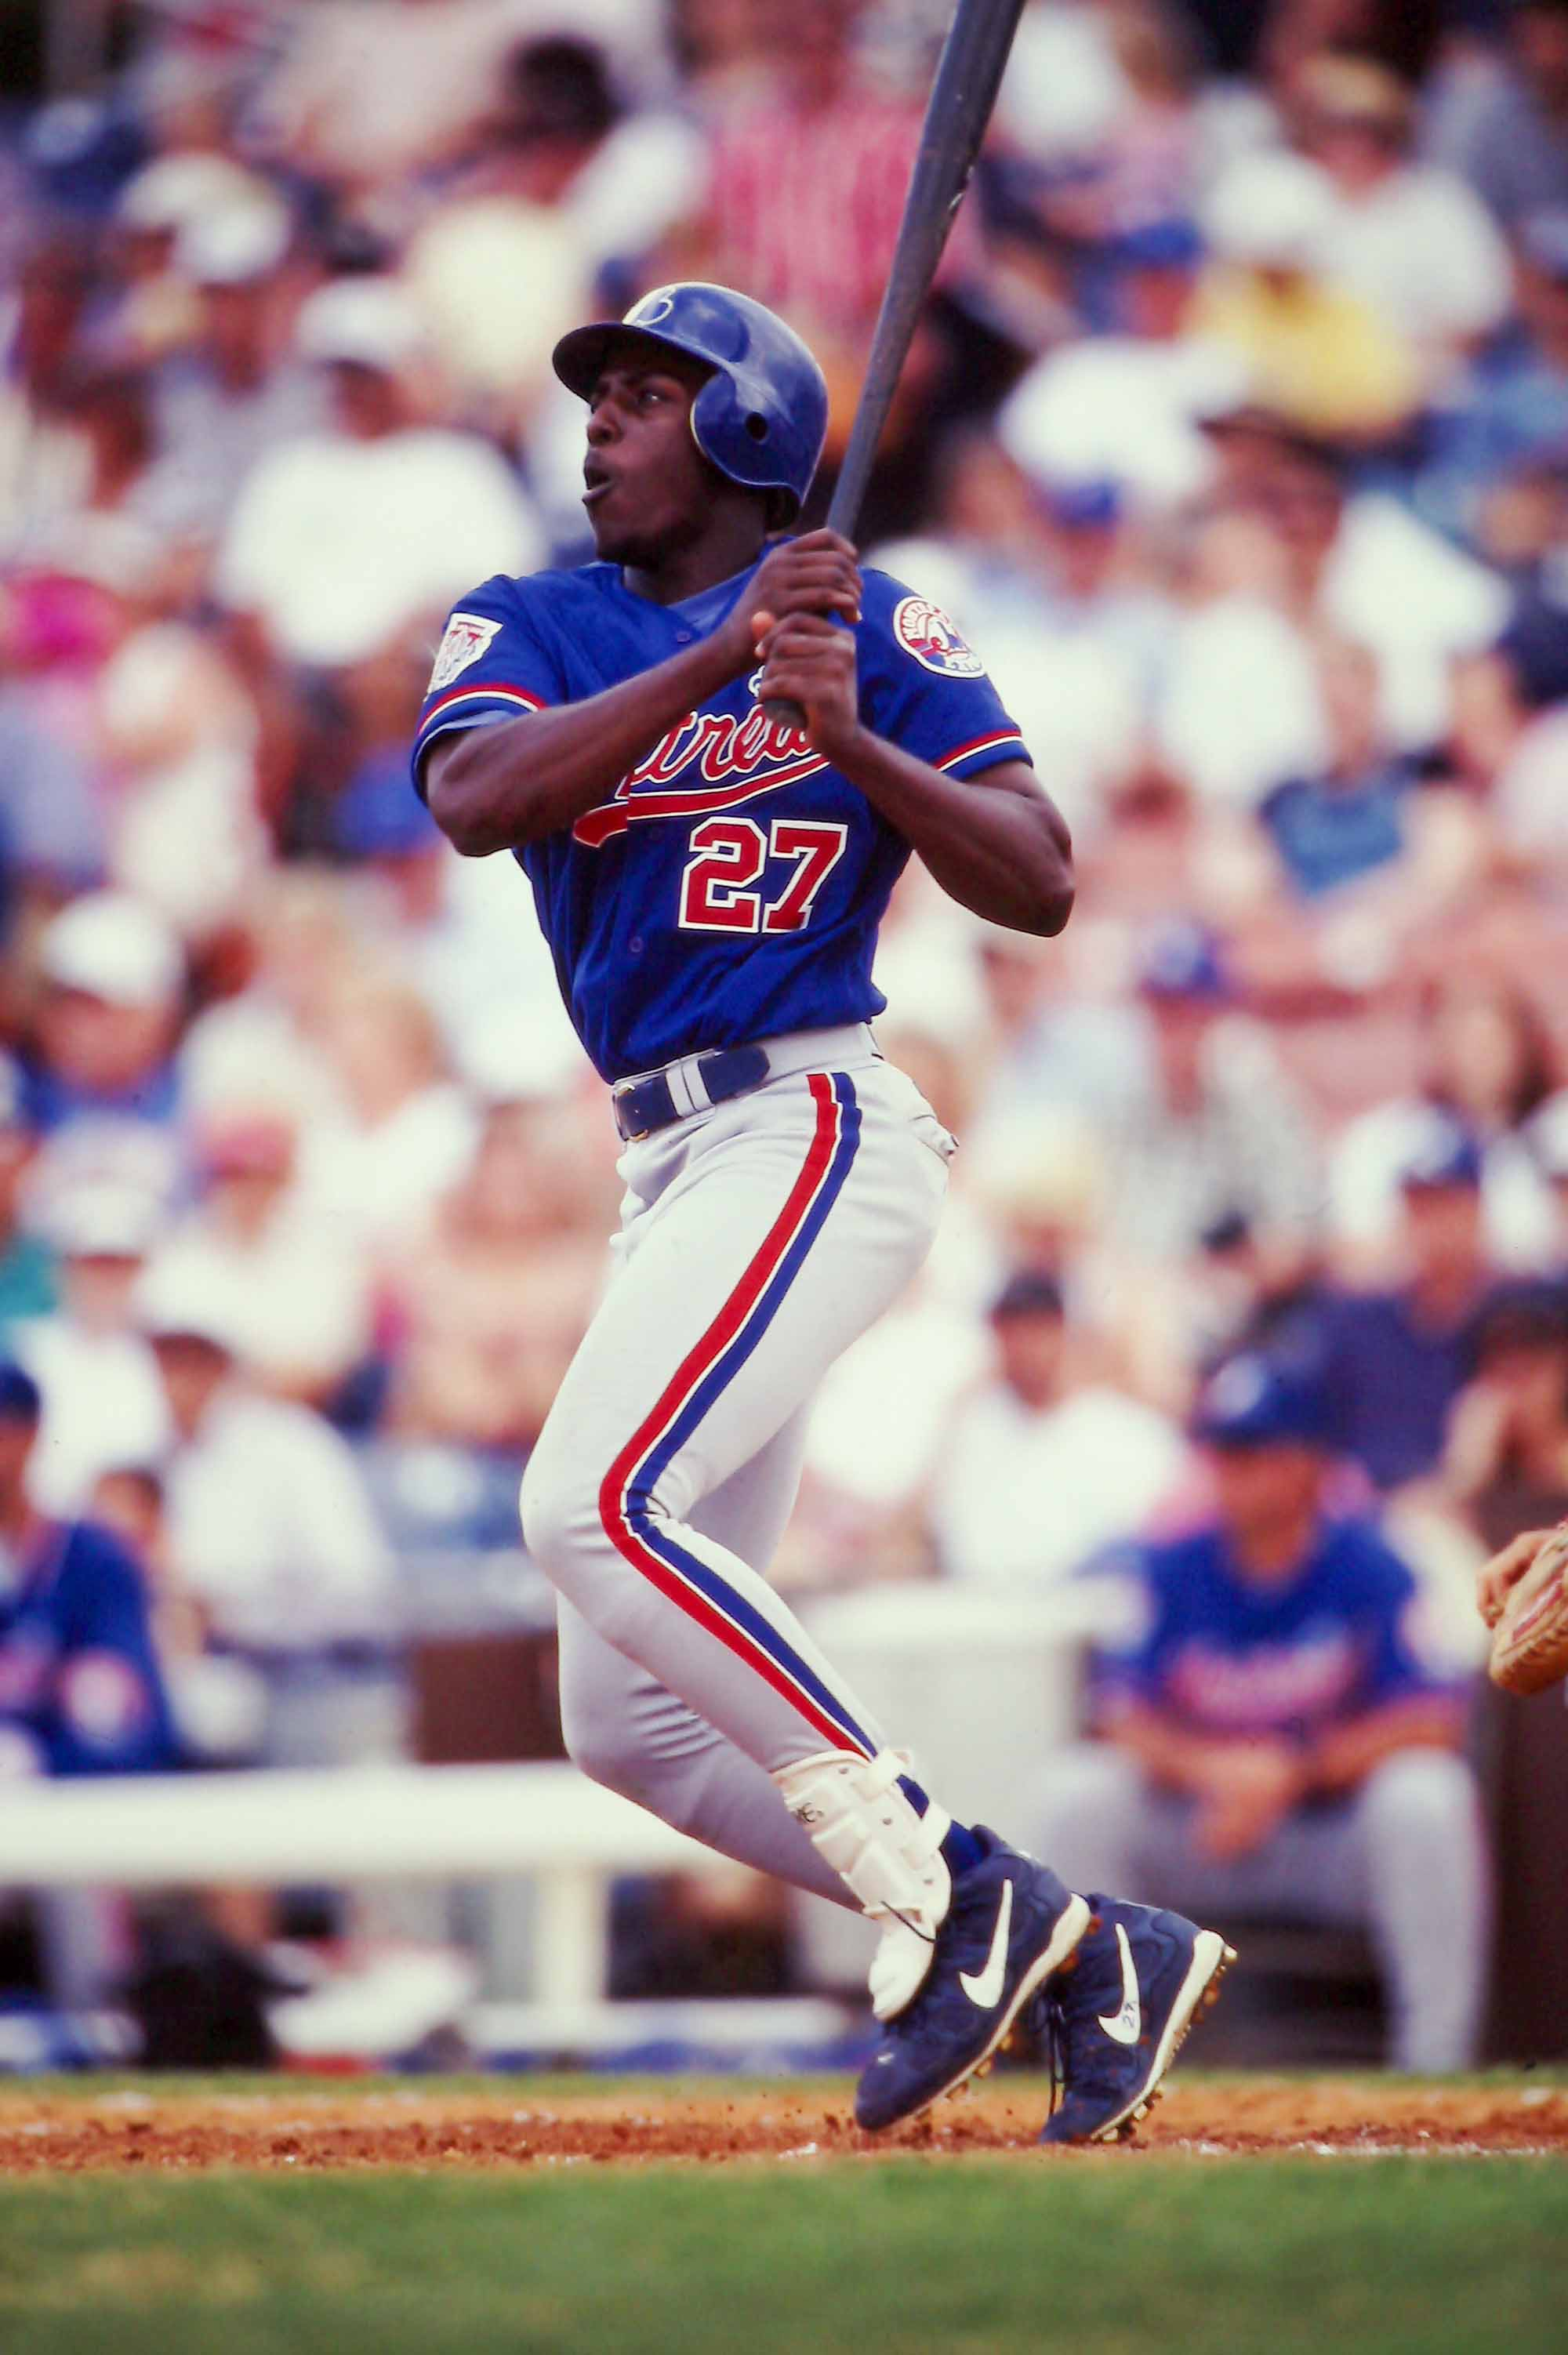 Vladimir Guerrero of the Montreal Expos